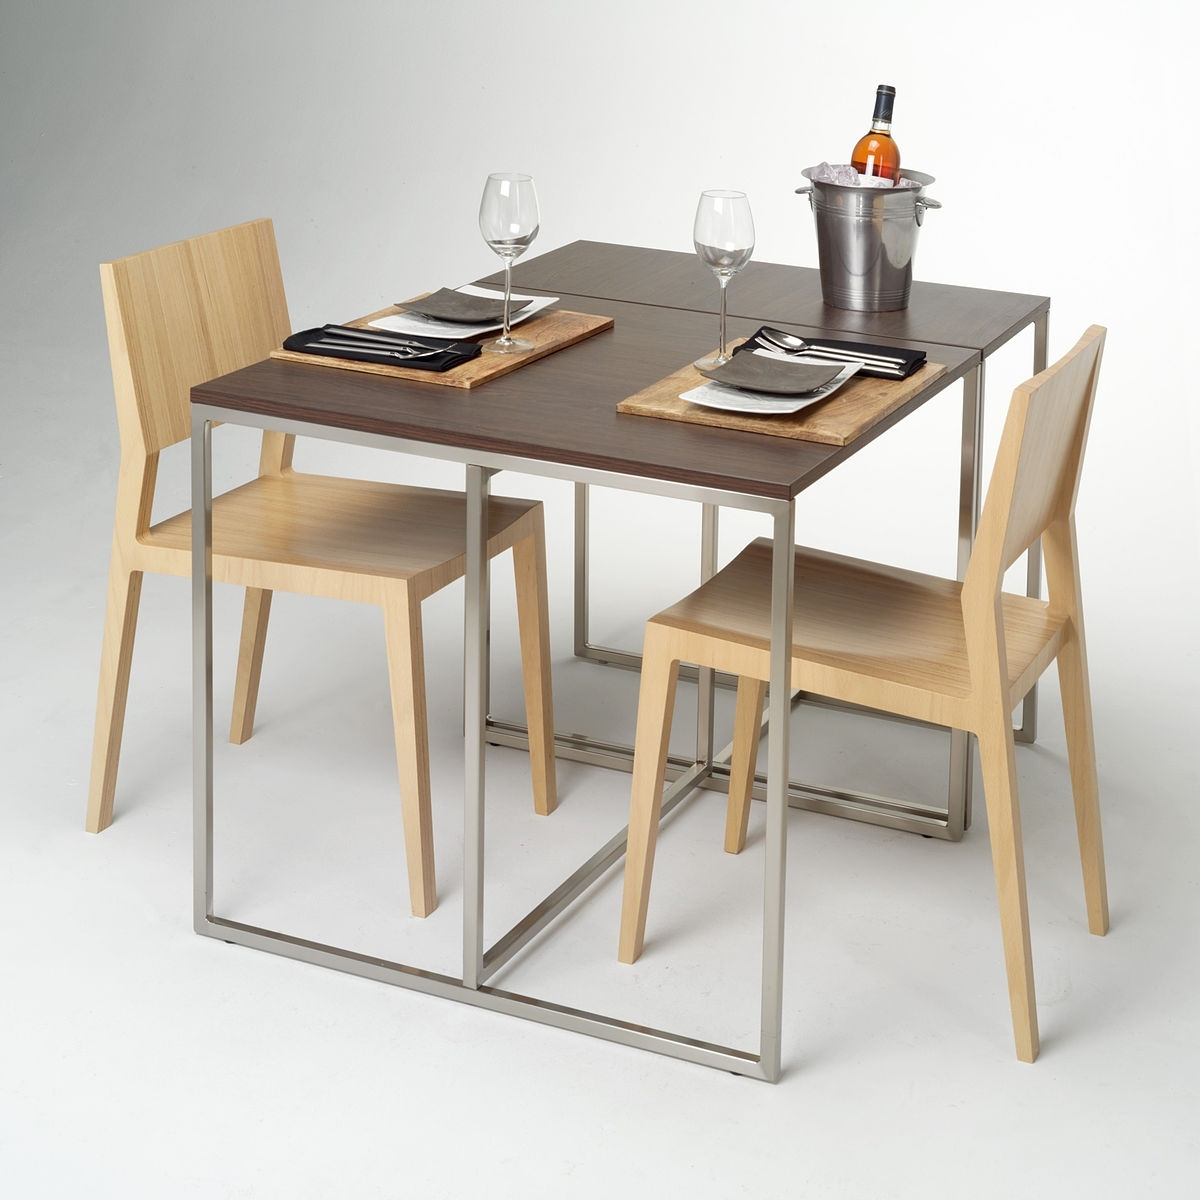 Furniture – Wikipedia With Regard To Most Current Market 7 Piece Dining Sets With Side Chairs (View 19 of 20)